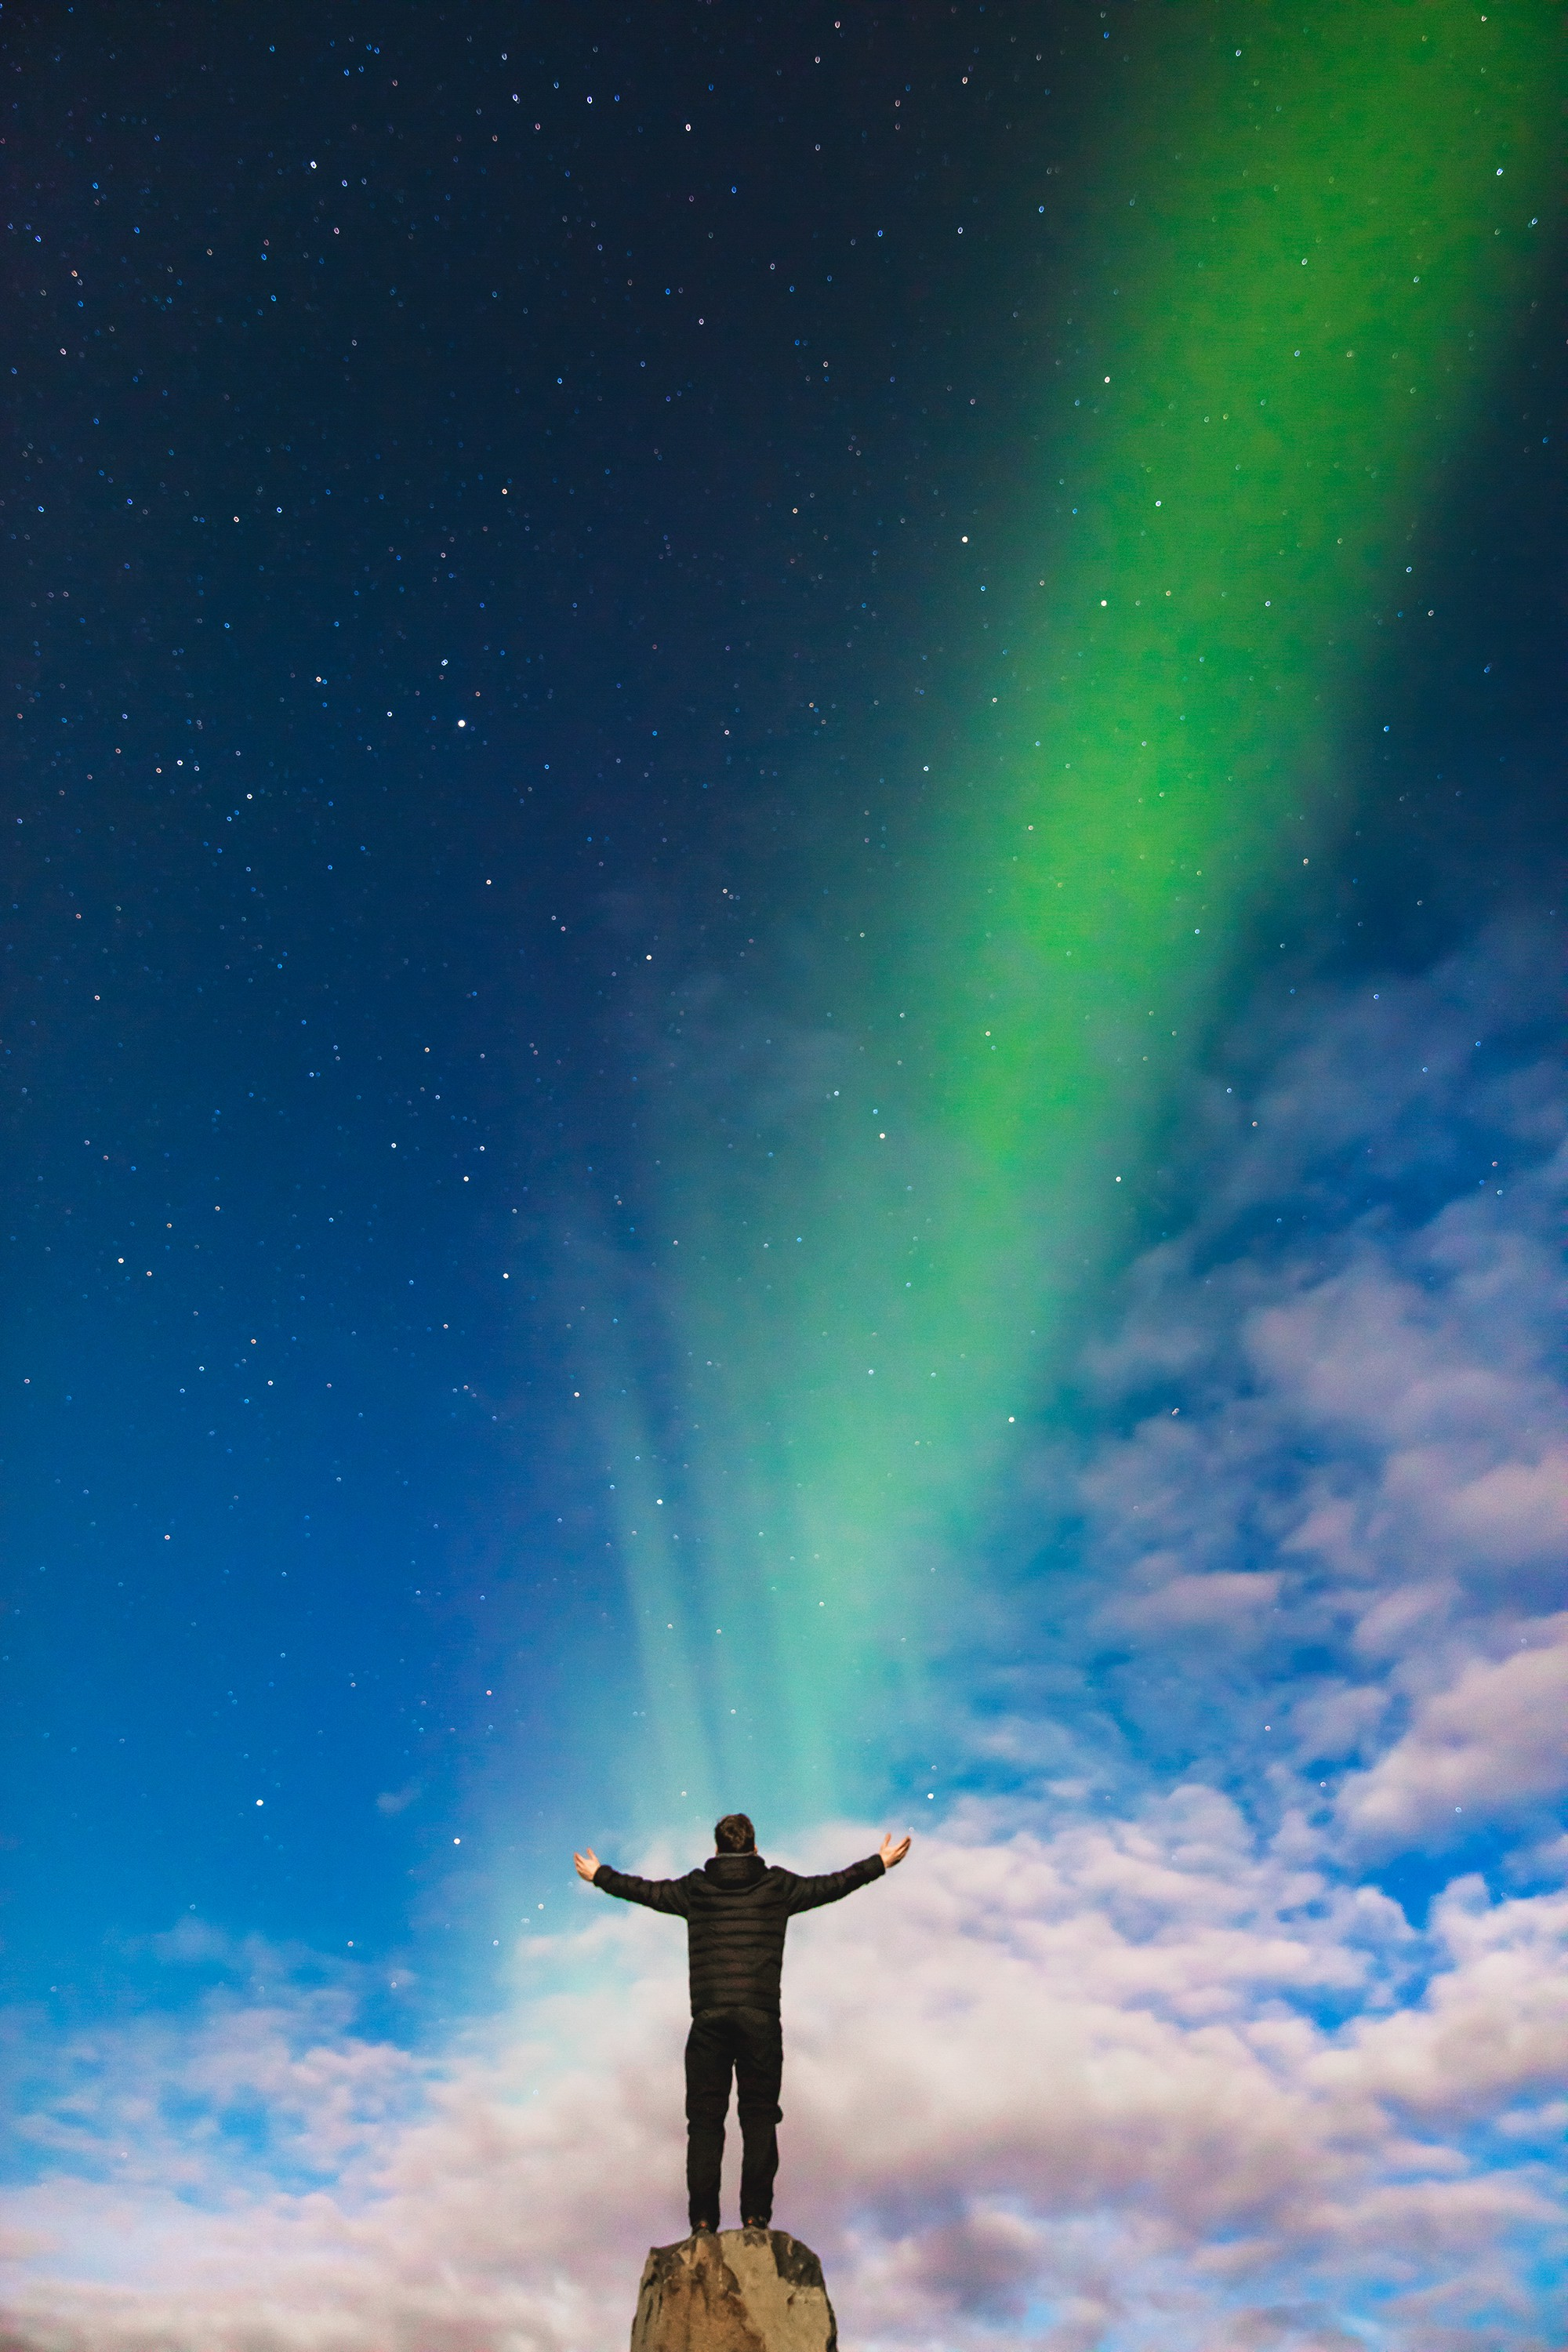 A man standing on a rock under the northern lights with the sun setting (or perhaps rising)